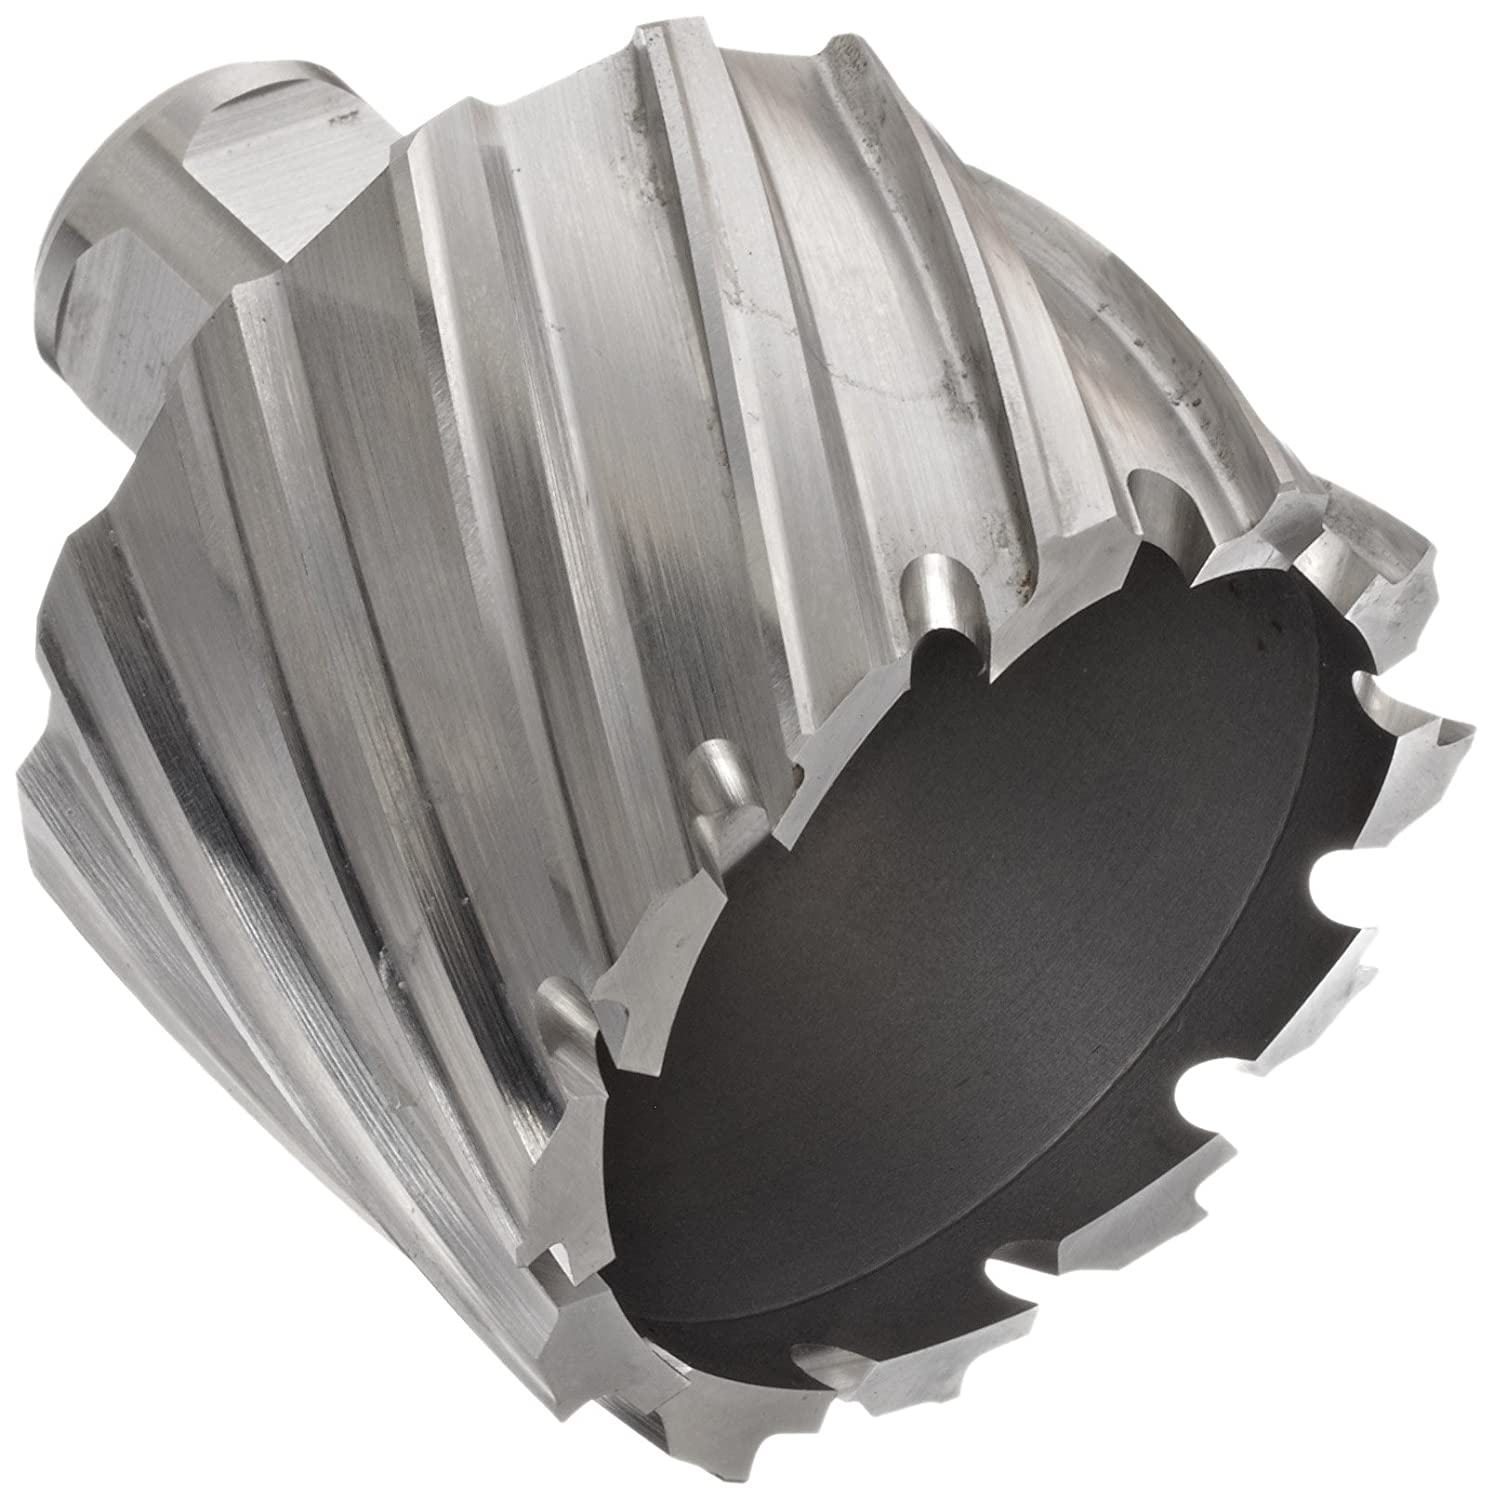 1-1//2 Diameter Jancy Slugger Carbide-Tipped Annular Cutter 2 Depth Finish 3//4 Annular Shank Bright Uncoated